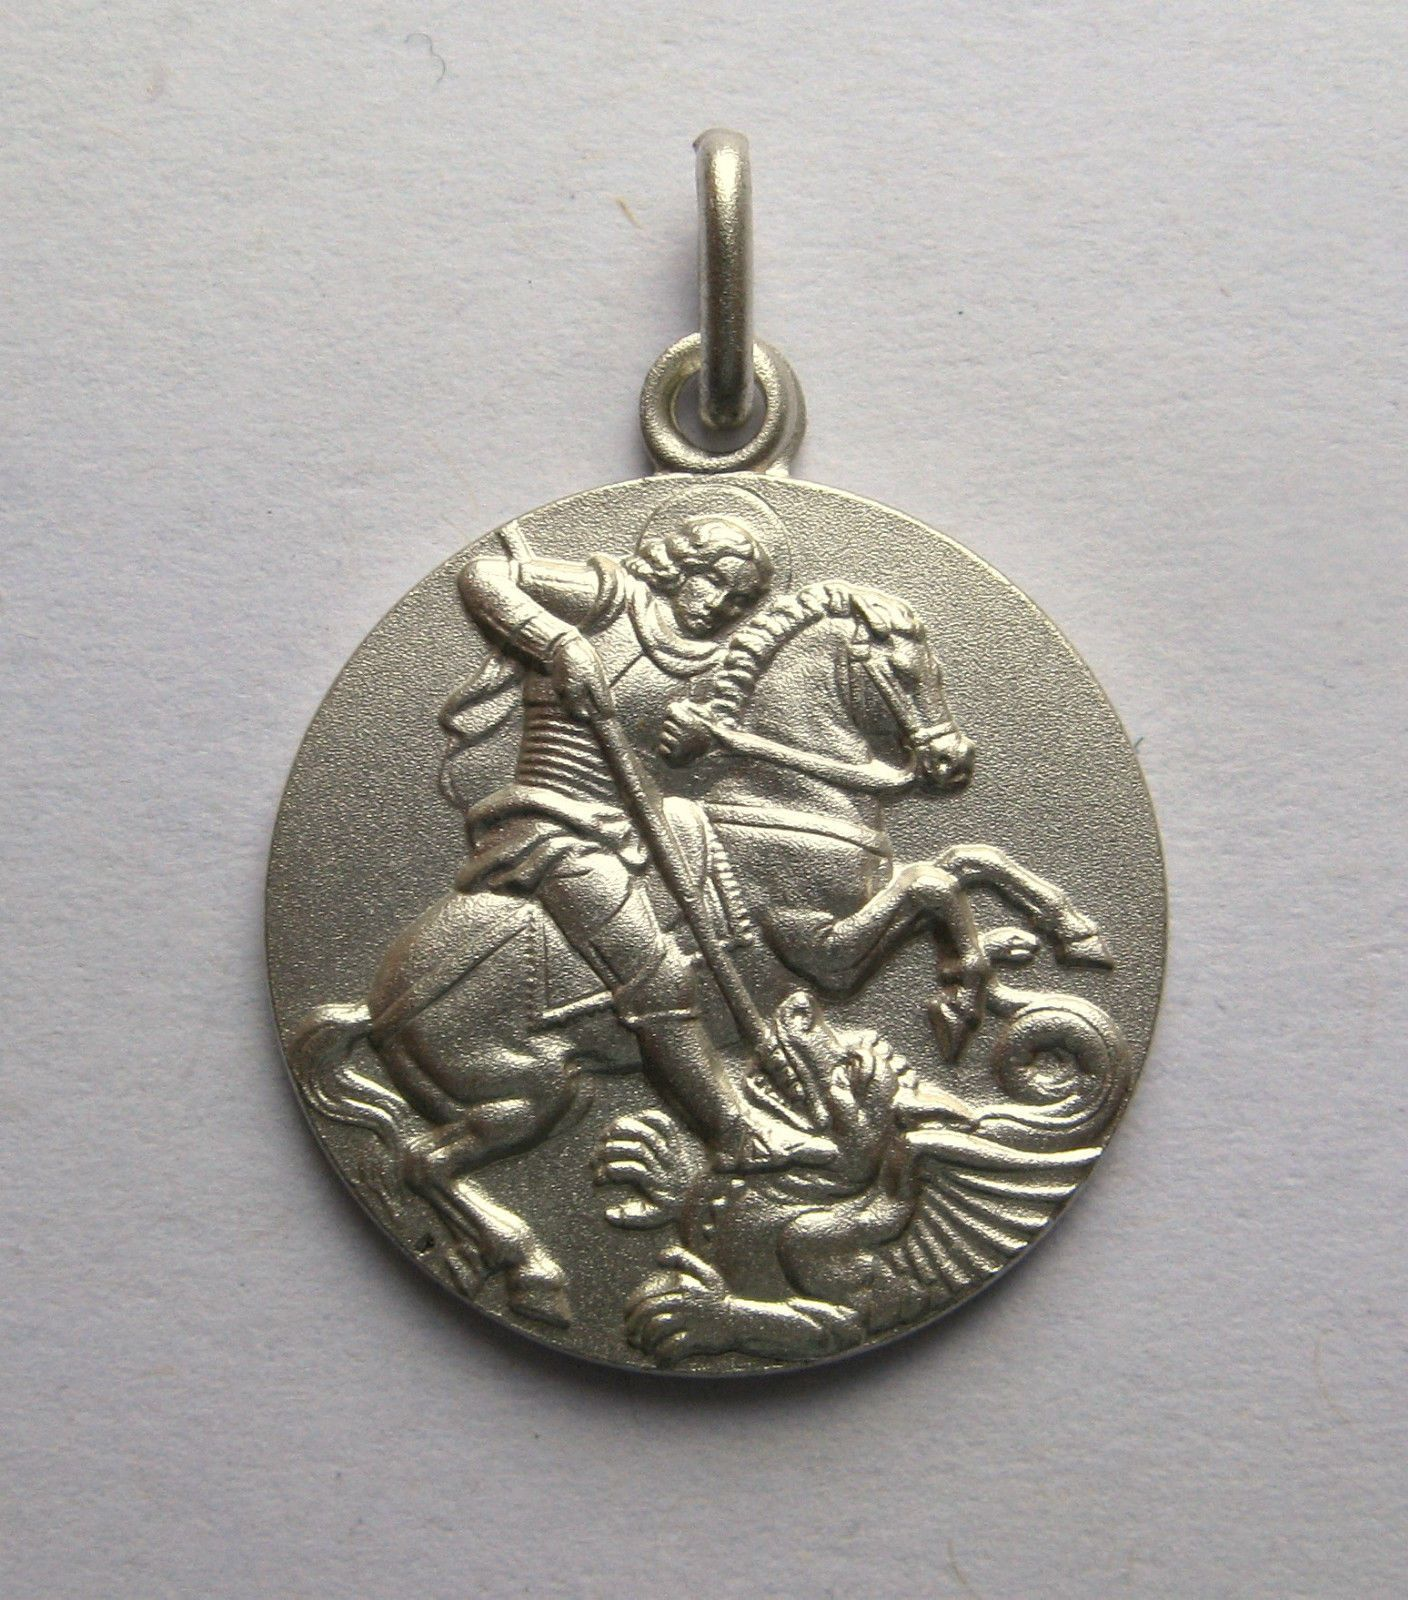 nz st jewellery co gold buy c sovereign fishpond george from online q pendant original